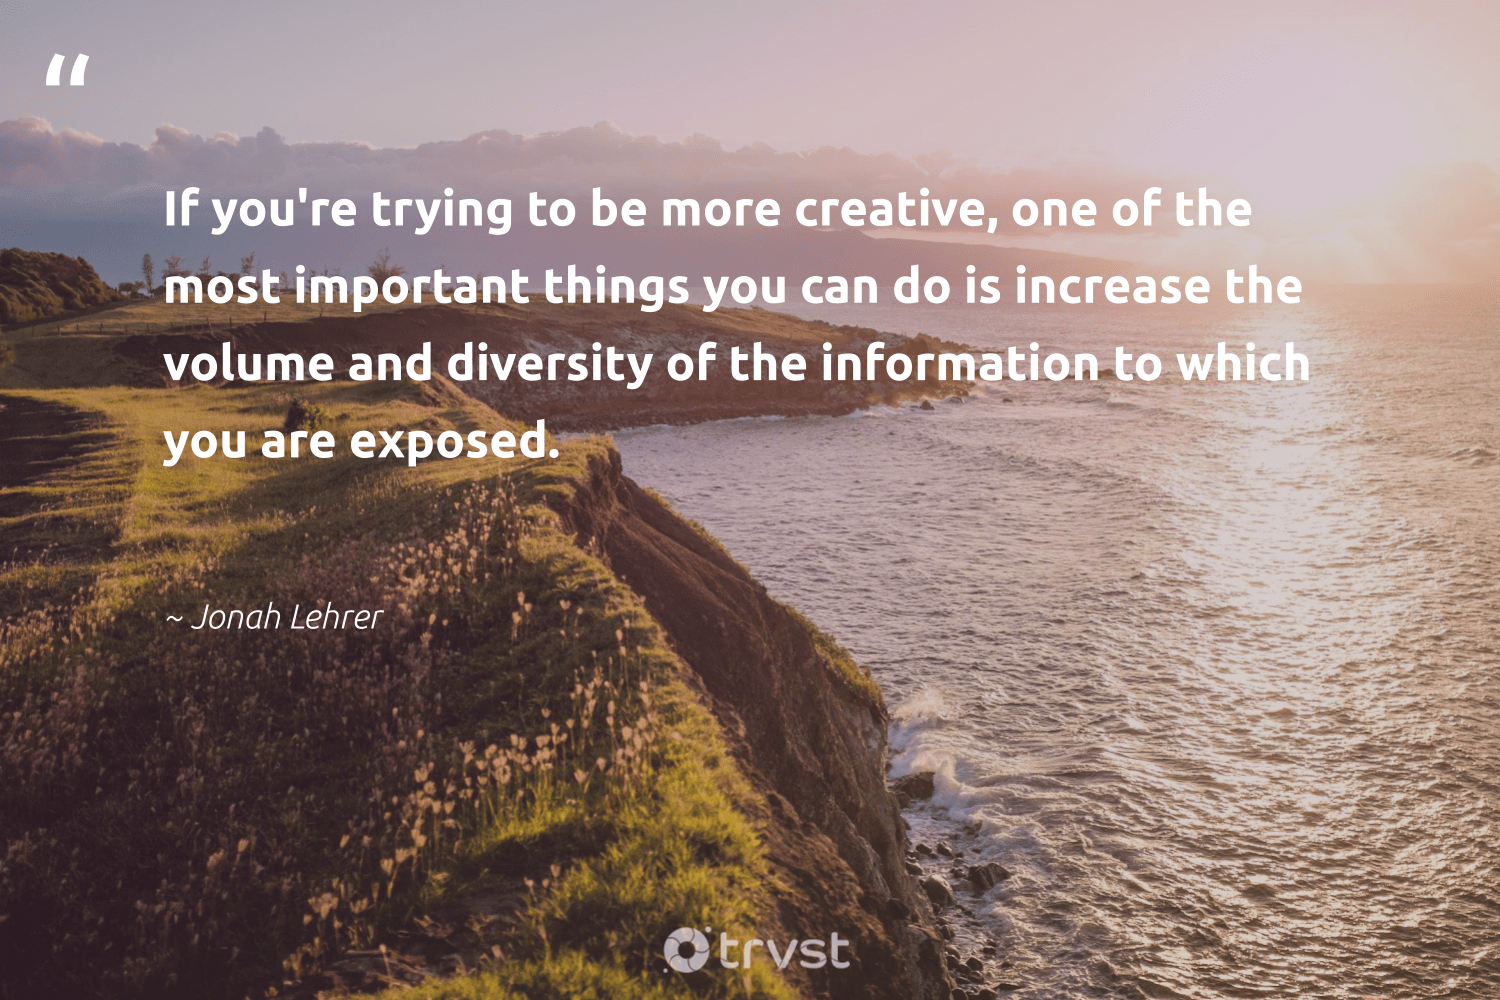 """If you're trying to be more creative, one of the most important things you can do is increase the volume and diversity of the information to which you are exposed.""  - Jonah Lehrer #trvst #quotes #diversity #creative #representationmatters #discrimination #nevergiveup #weareallone #dosomething #inclusion #futureofwork #makeadifference"